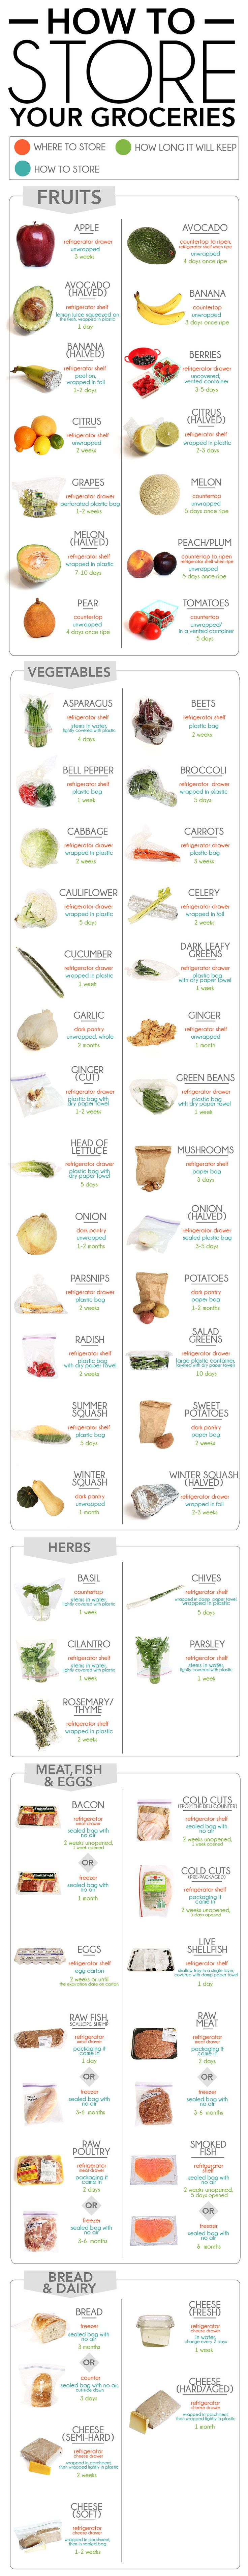 This Is Exactly How To Store Your Groceries Everything you need to know about where and how to store the food in your kitchen. posted on Sept. 30, 2014, Christine Byrne BuzzFeed Staff JennyChang BuzzFeed Staff